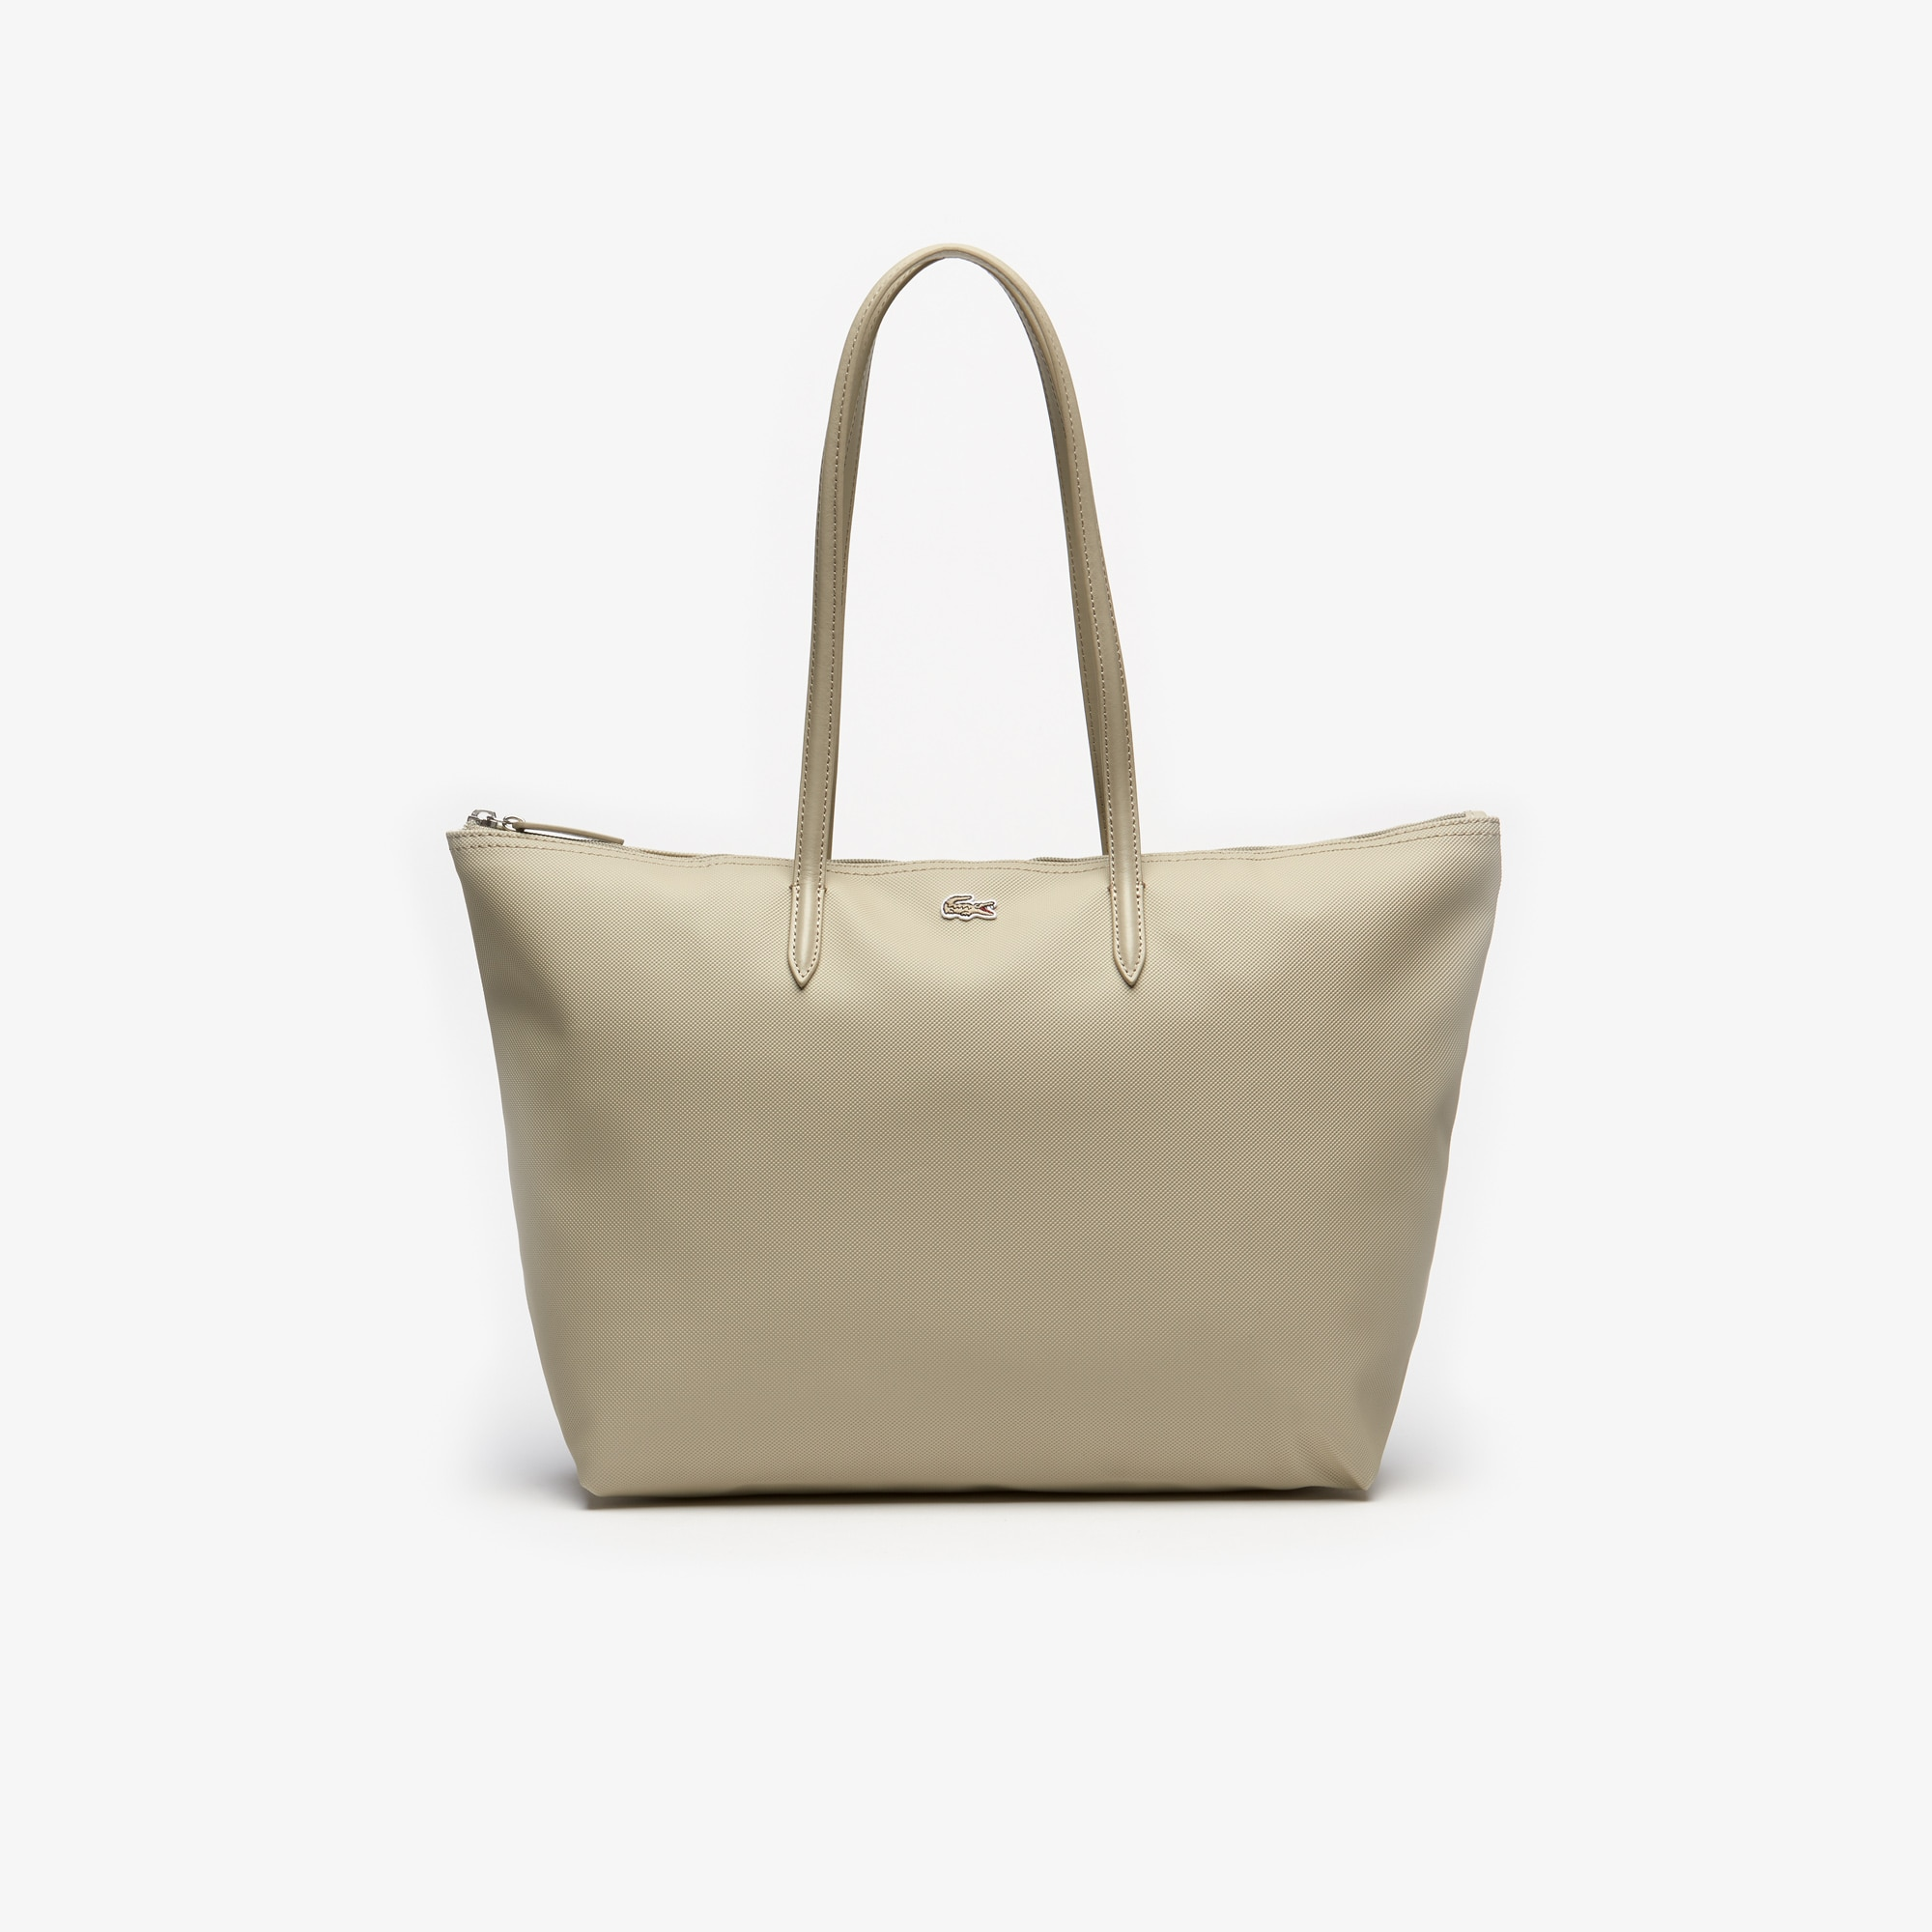 4a12aa4b2ca Bags & Handbags Collection | Women's Leather Goods | LACOSTE